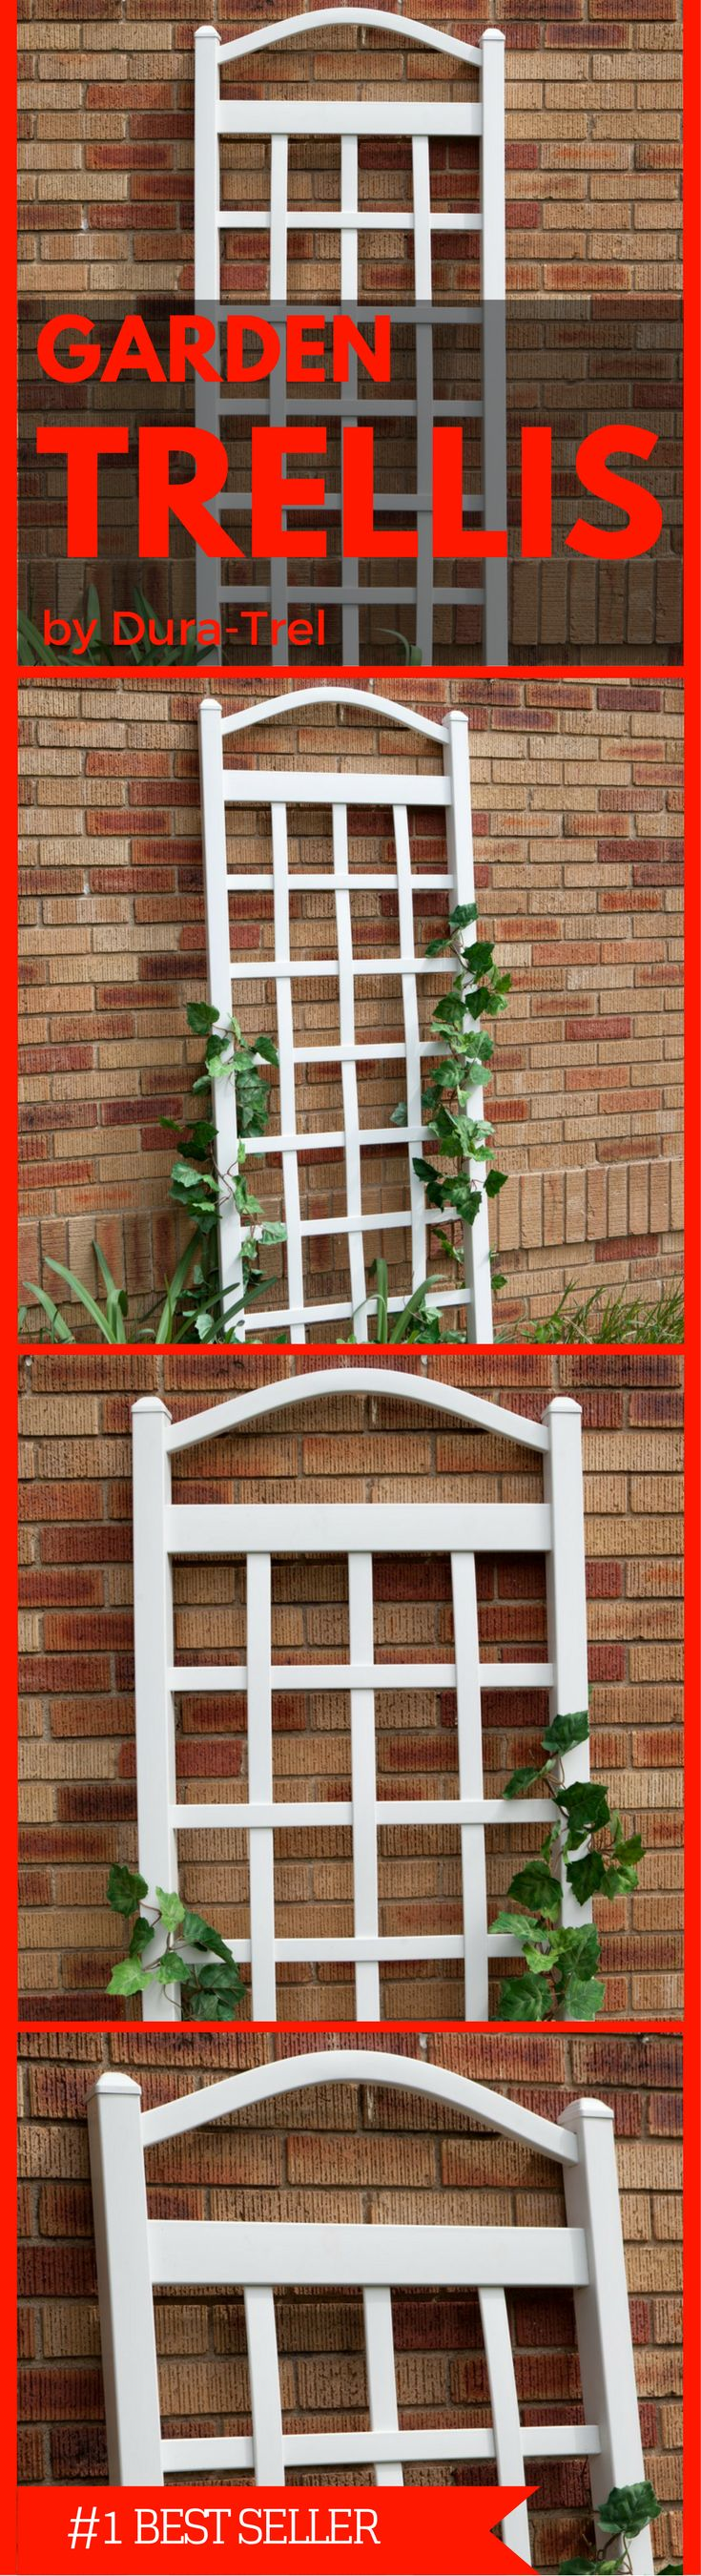 """Dura-Trel 11172 Cambridge Trellis 20 Year Warranty; 100-percent maintenance free; PVC vinyl will not crack, fade, peel or discolor Easy to Assemble; pre-cut and pre-drilled holes with all hardware included Easy to Install; install against a wall or freestanding included with 16-inch steel ground anchors 2 by 2-Inch posts, overall height 76"""", width 28"""" Made in the USA. Check it out at Amazon now. Landscaping, Lawn and Garden"""